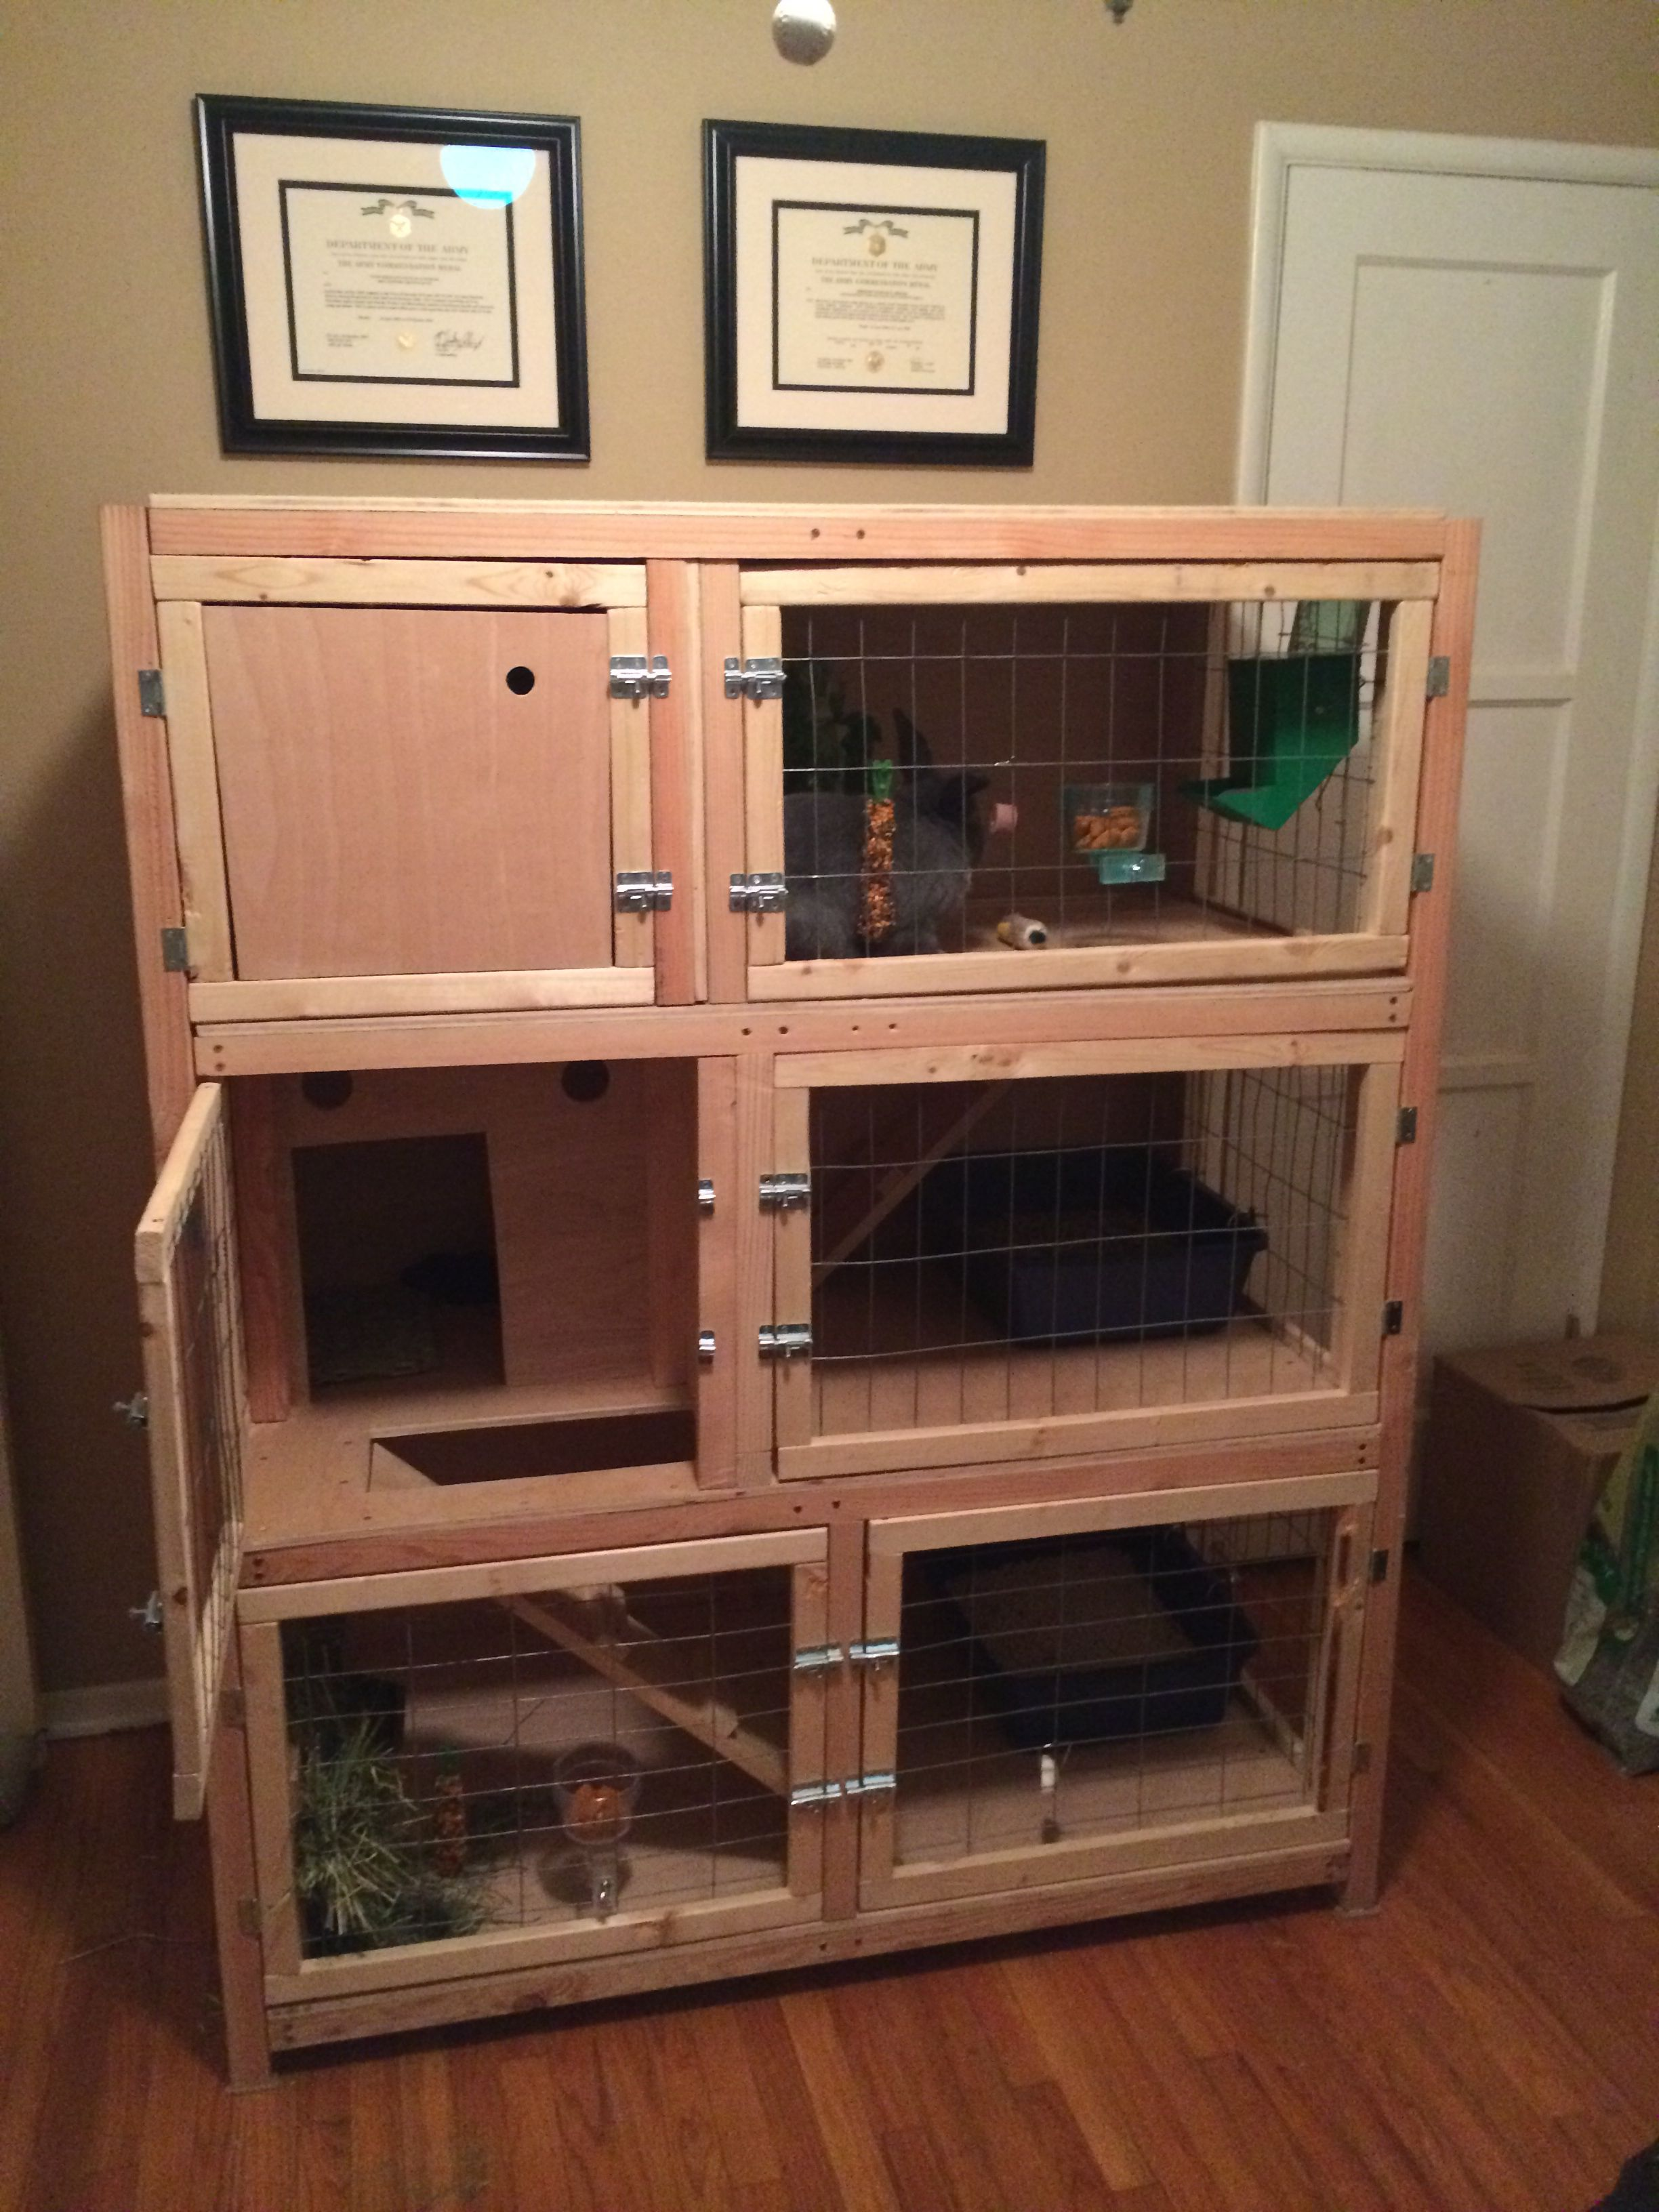 kids extra the hutches rabbit woodworking projects manor simple handmade hutch outdoor large pin sale for